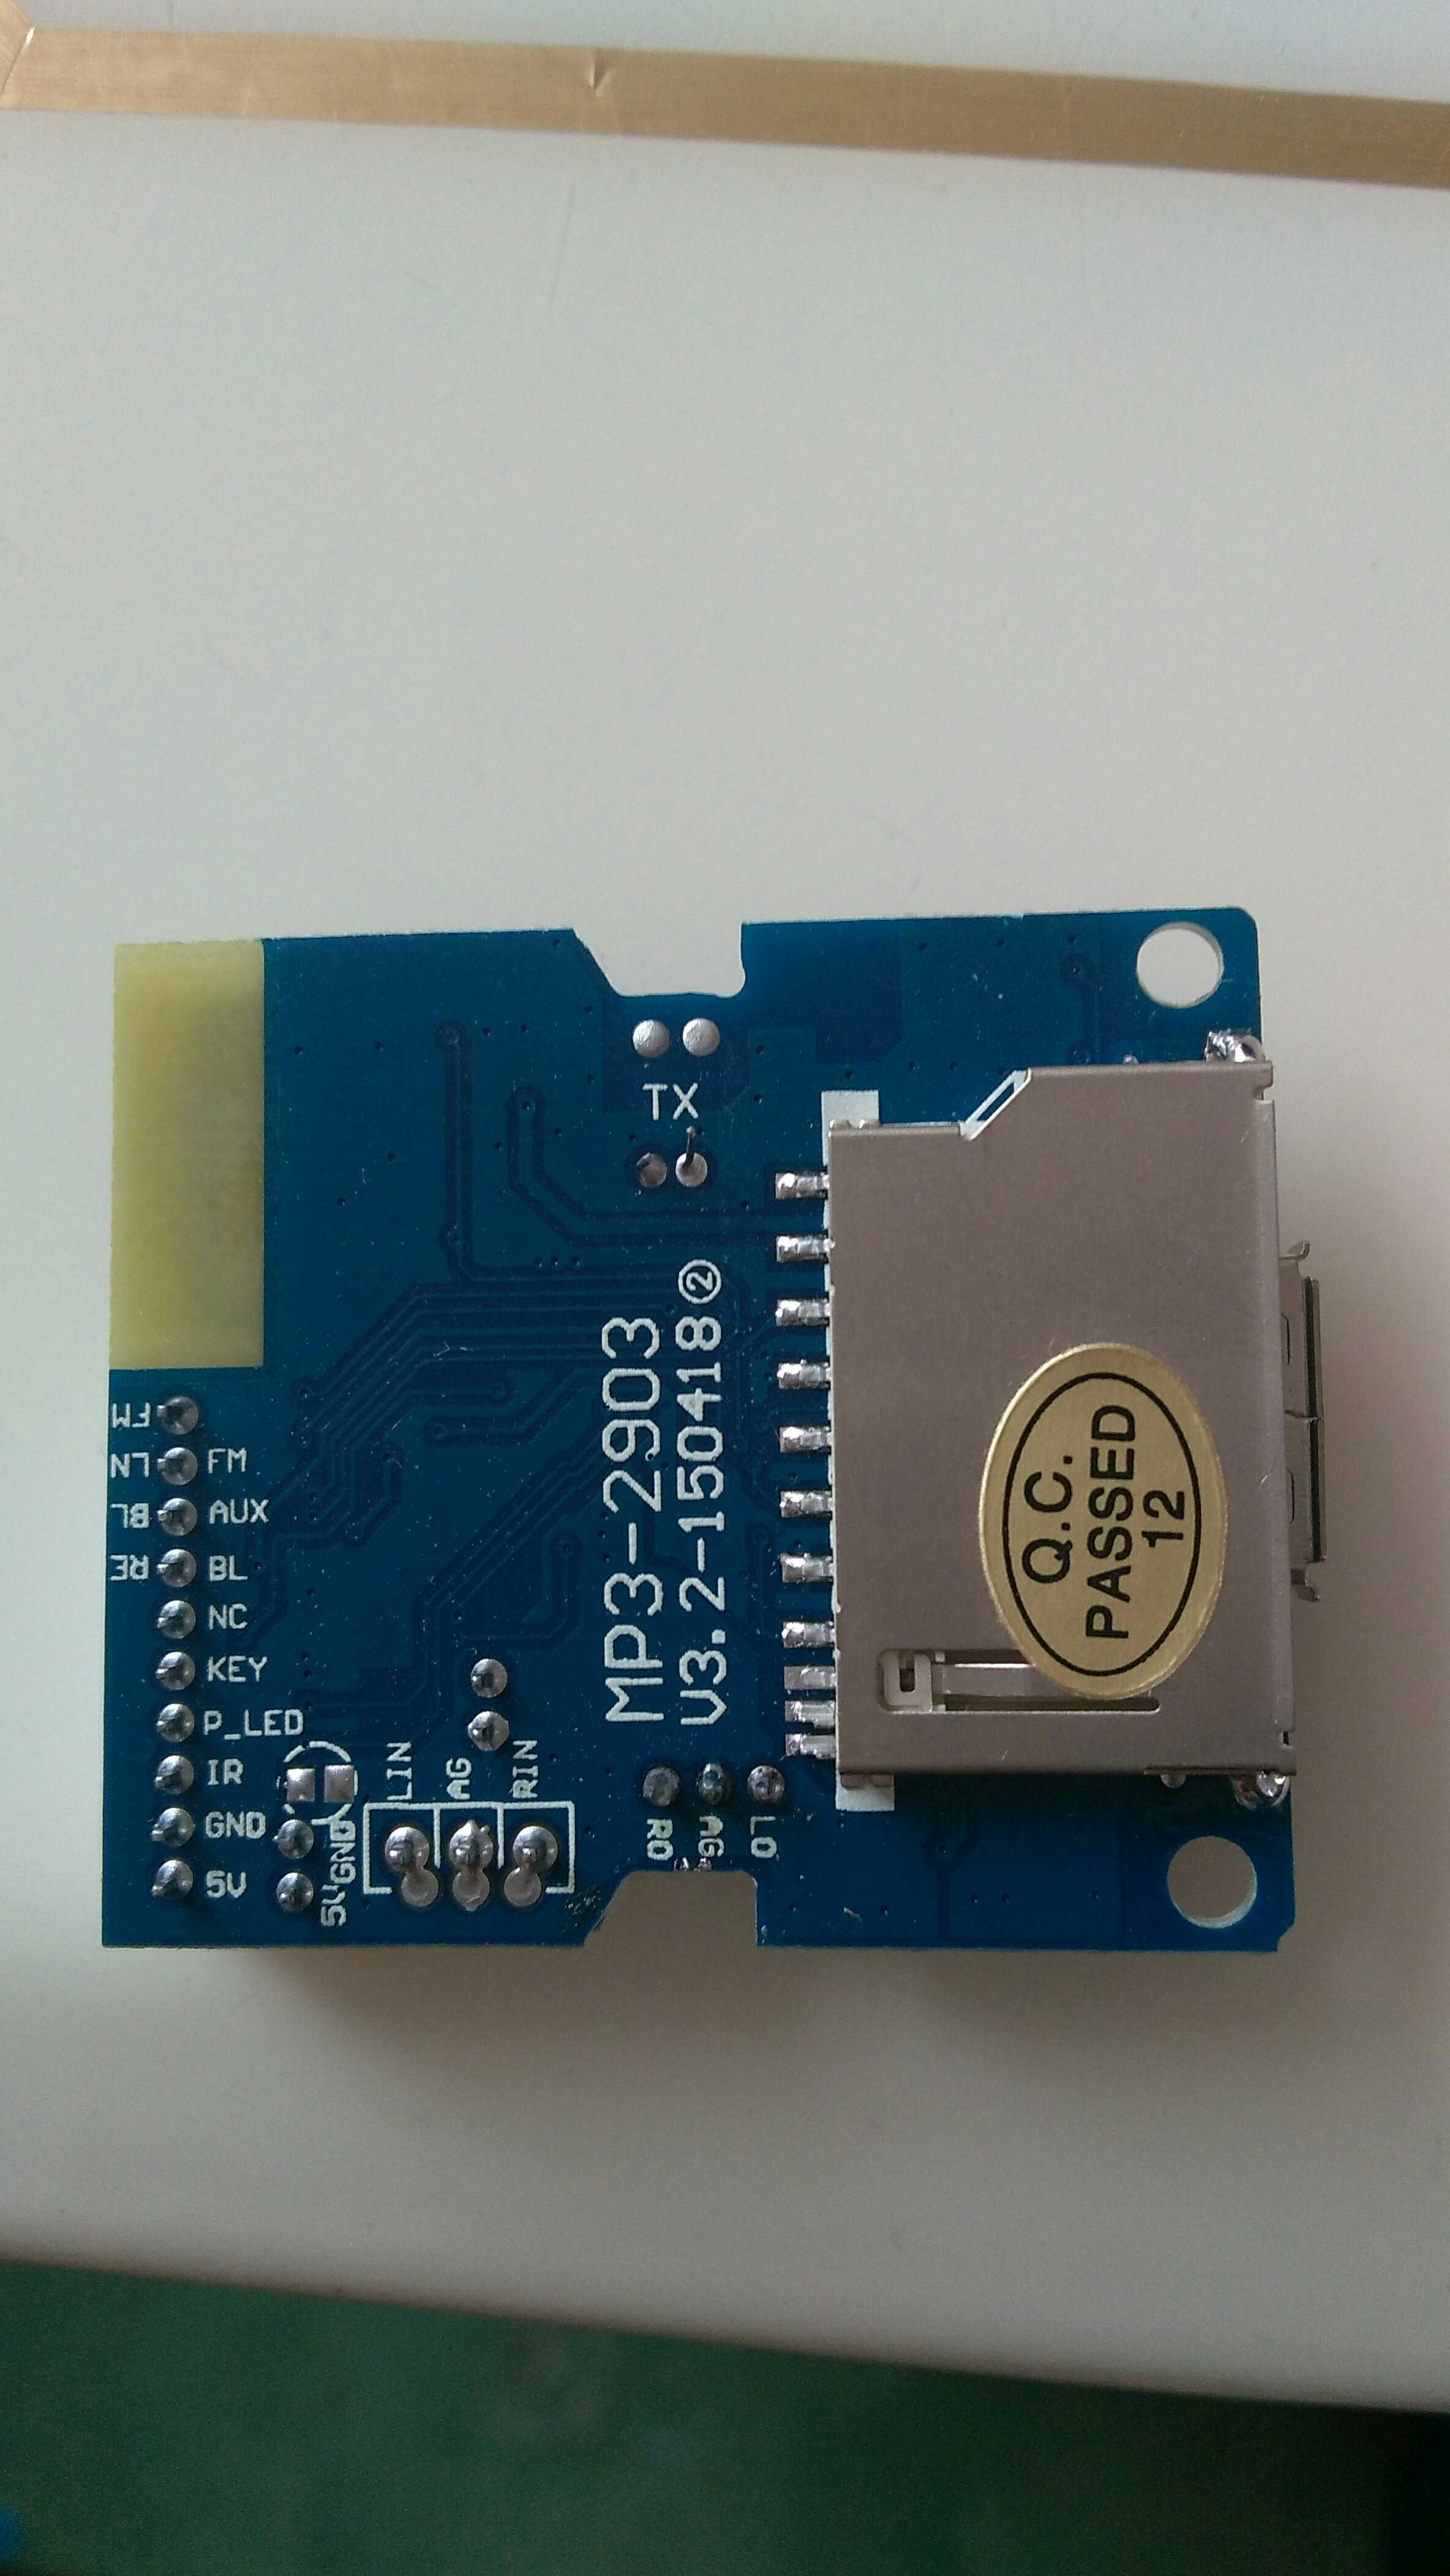 Usd 1558 Mp3 2103a Bluetooth Recording Decoding Board Usb Sd Card Circuit Buy Receiver Boardfm Color Categories With Resistor Button Remote Control Resistance